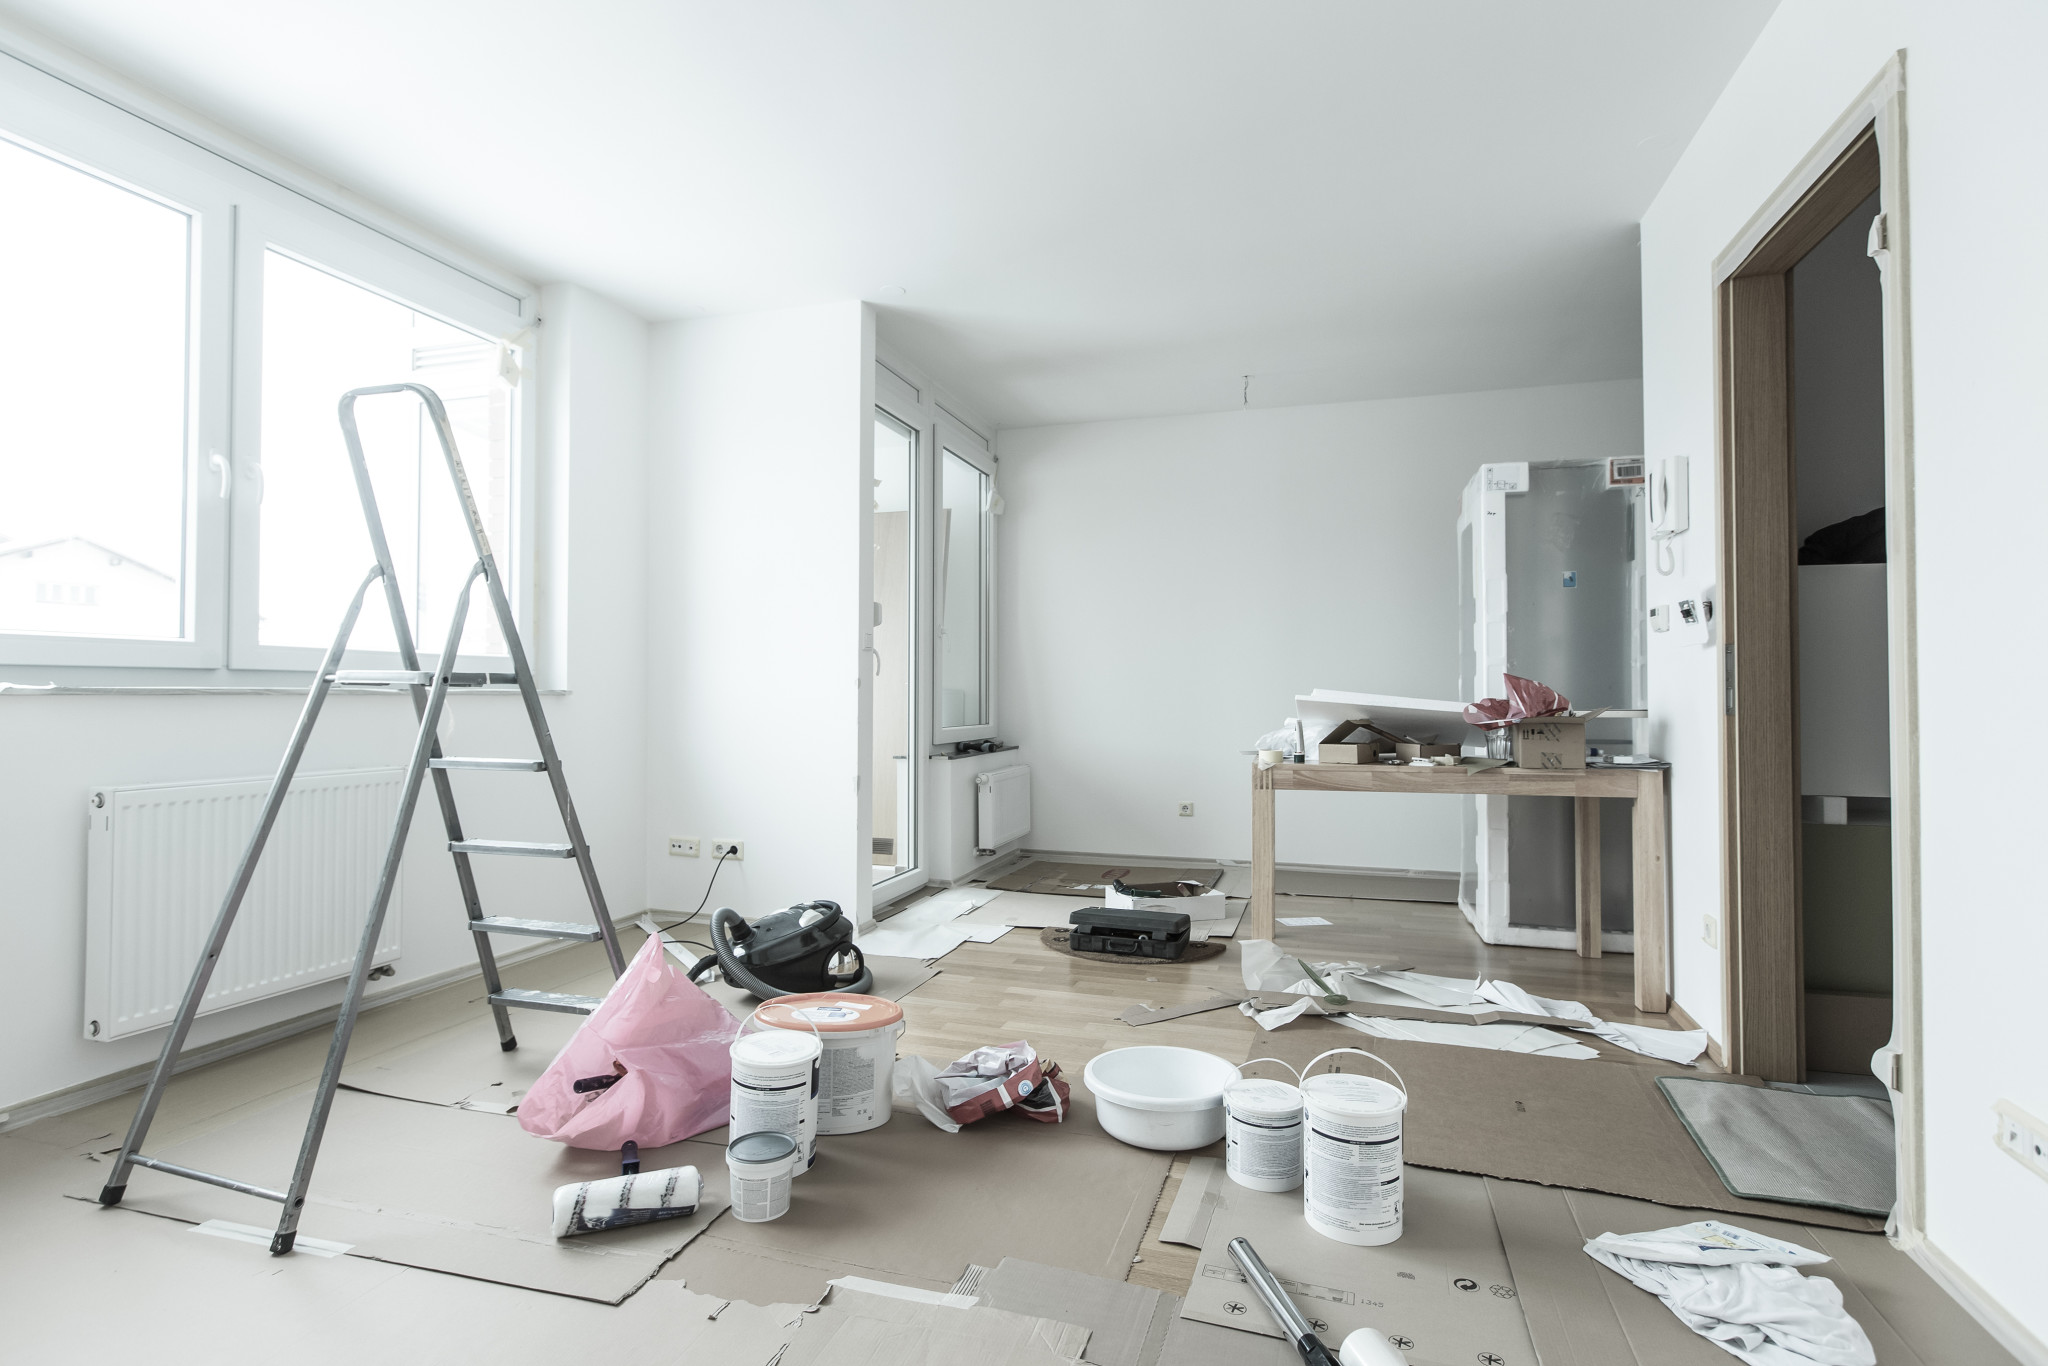 Rental Property Maintenance: Landlord Or Tenant